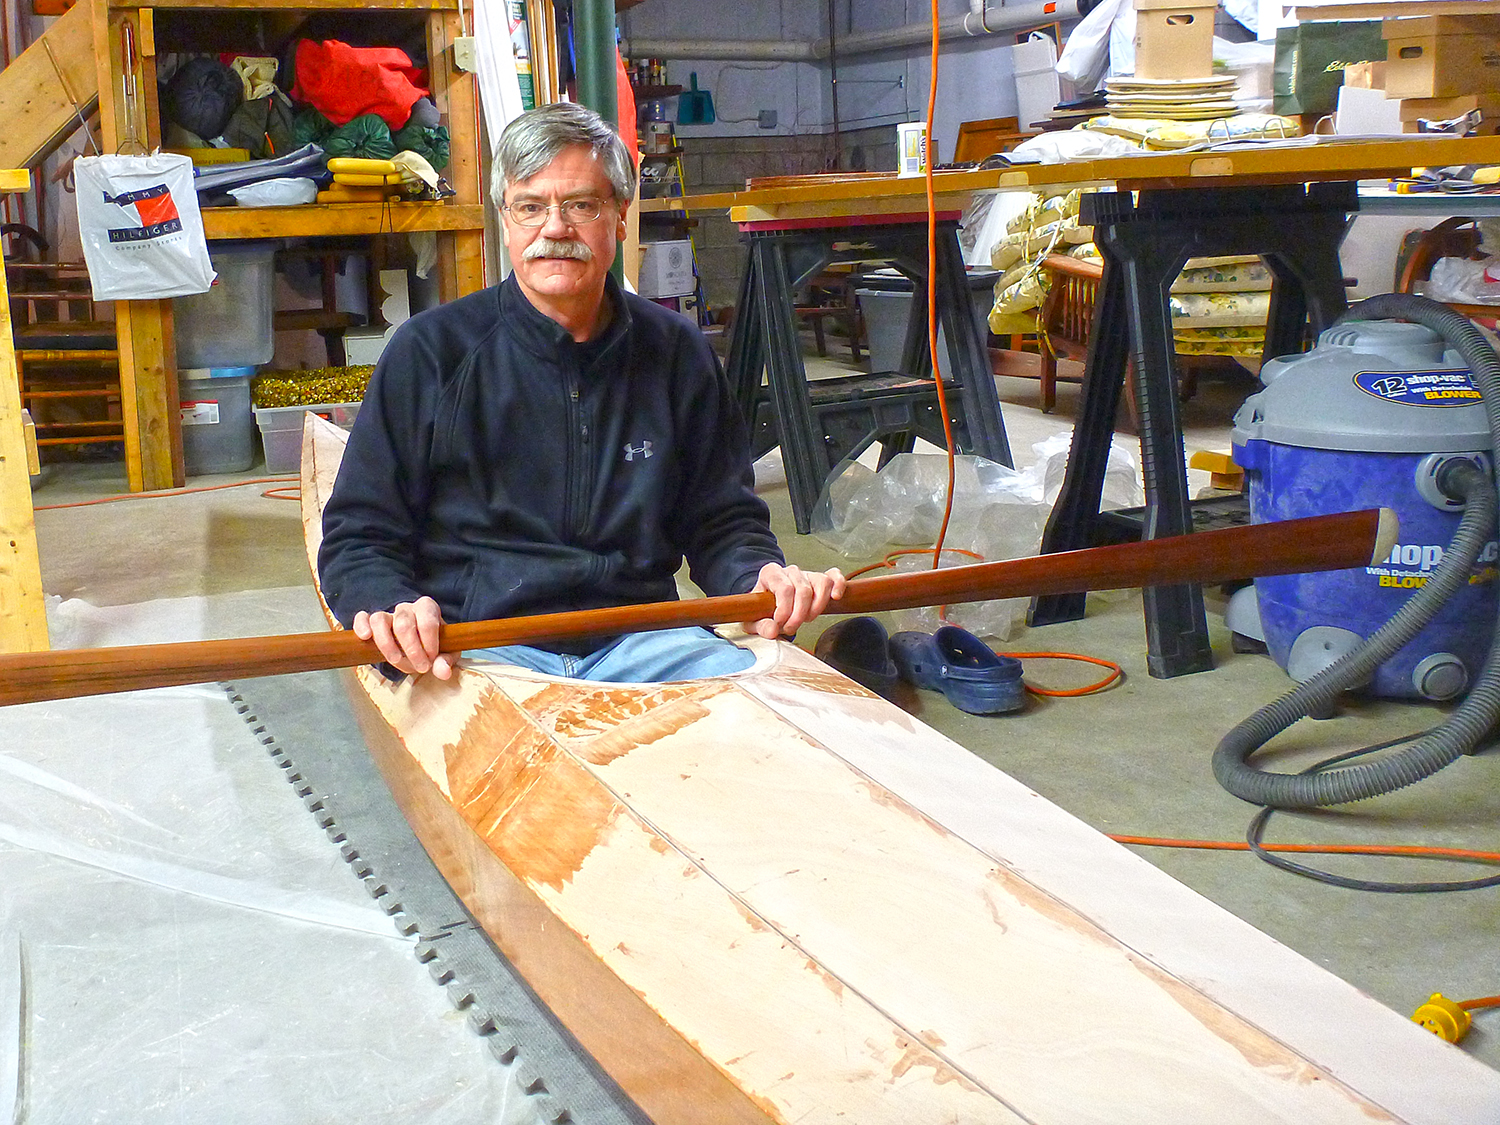 The author tries the fit of the developing kayak.   Mike Cavanaugh